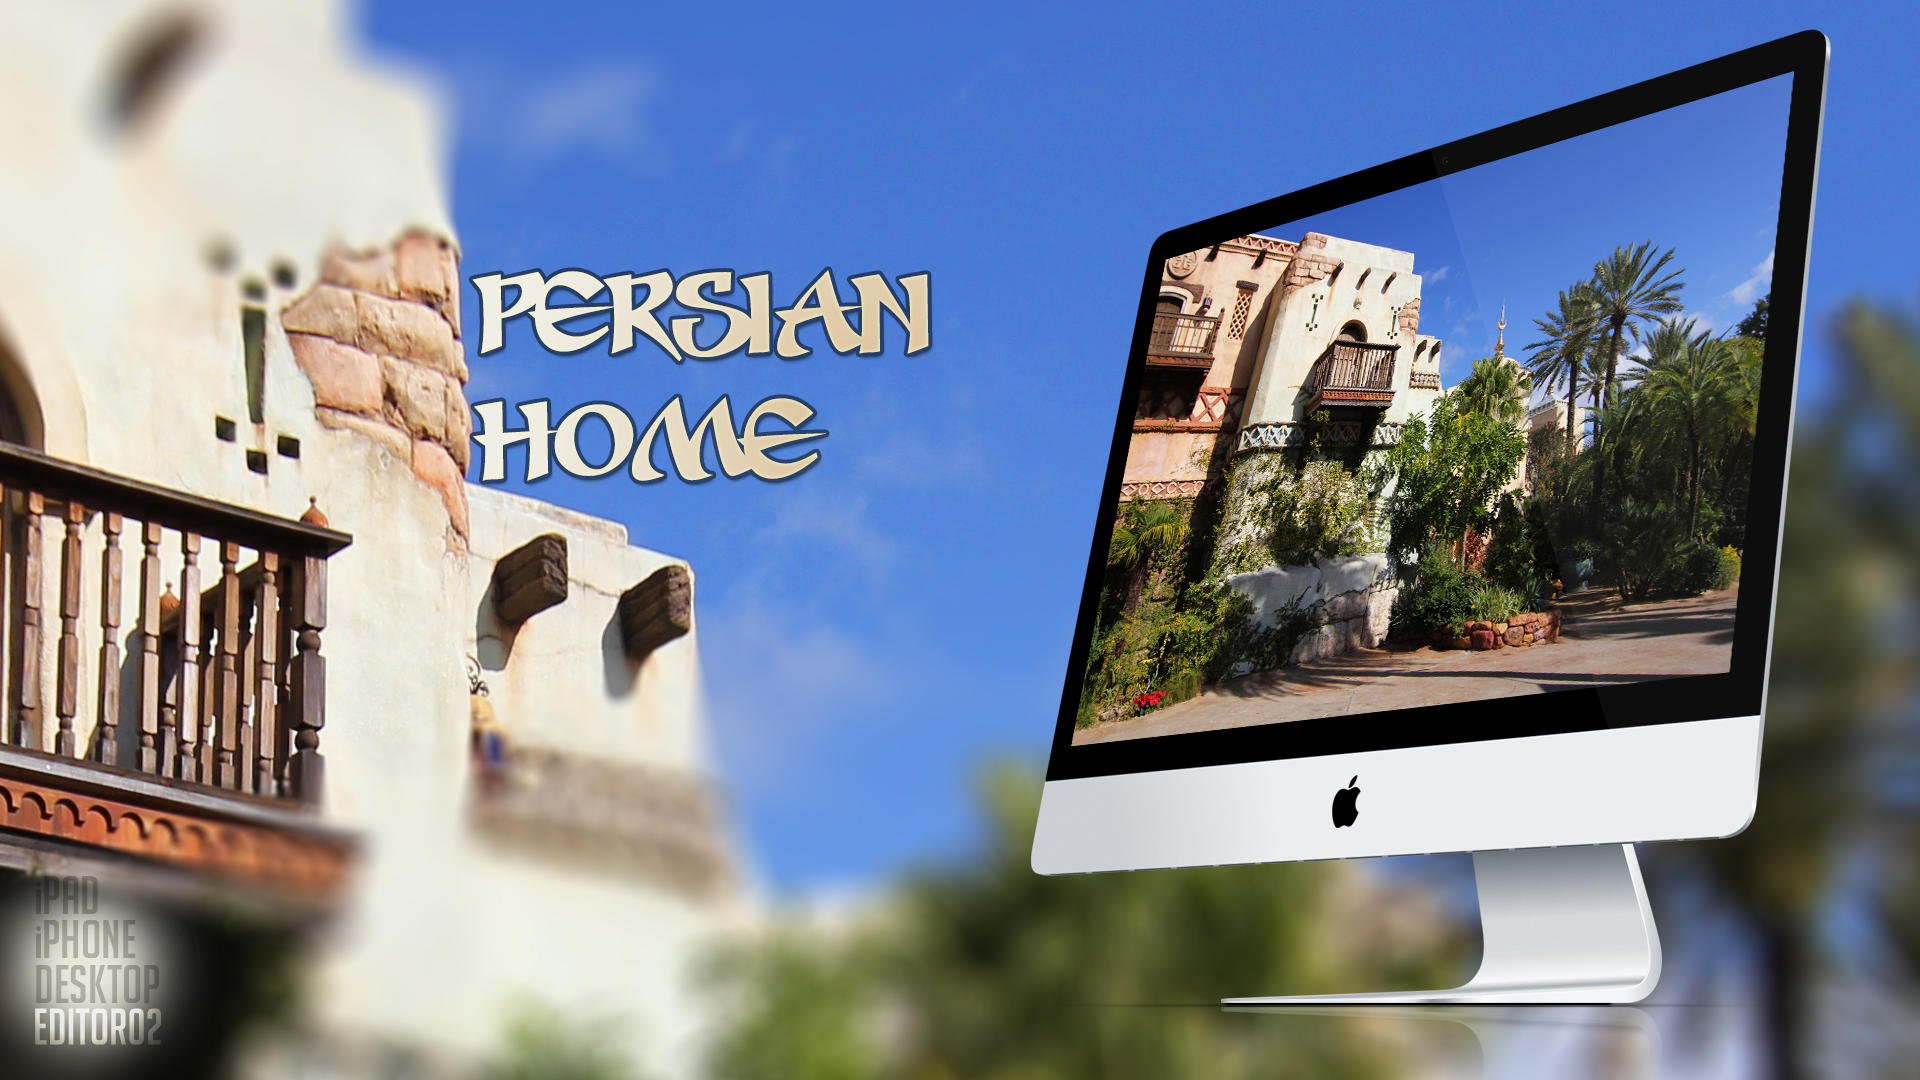 Persian Home - Wallpaper by GavinAsh